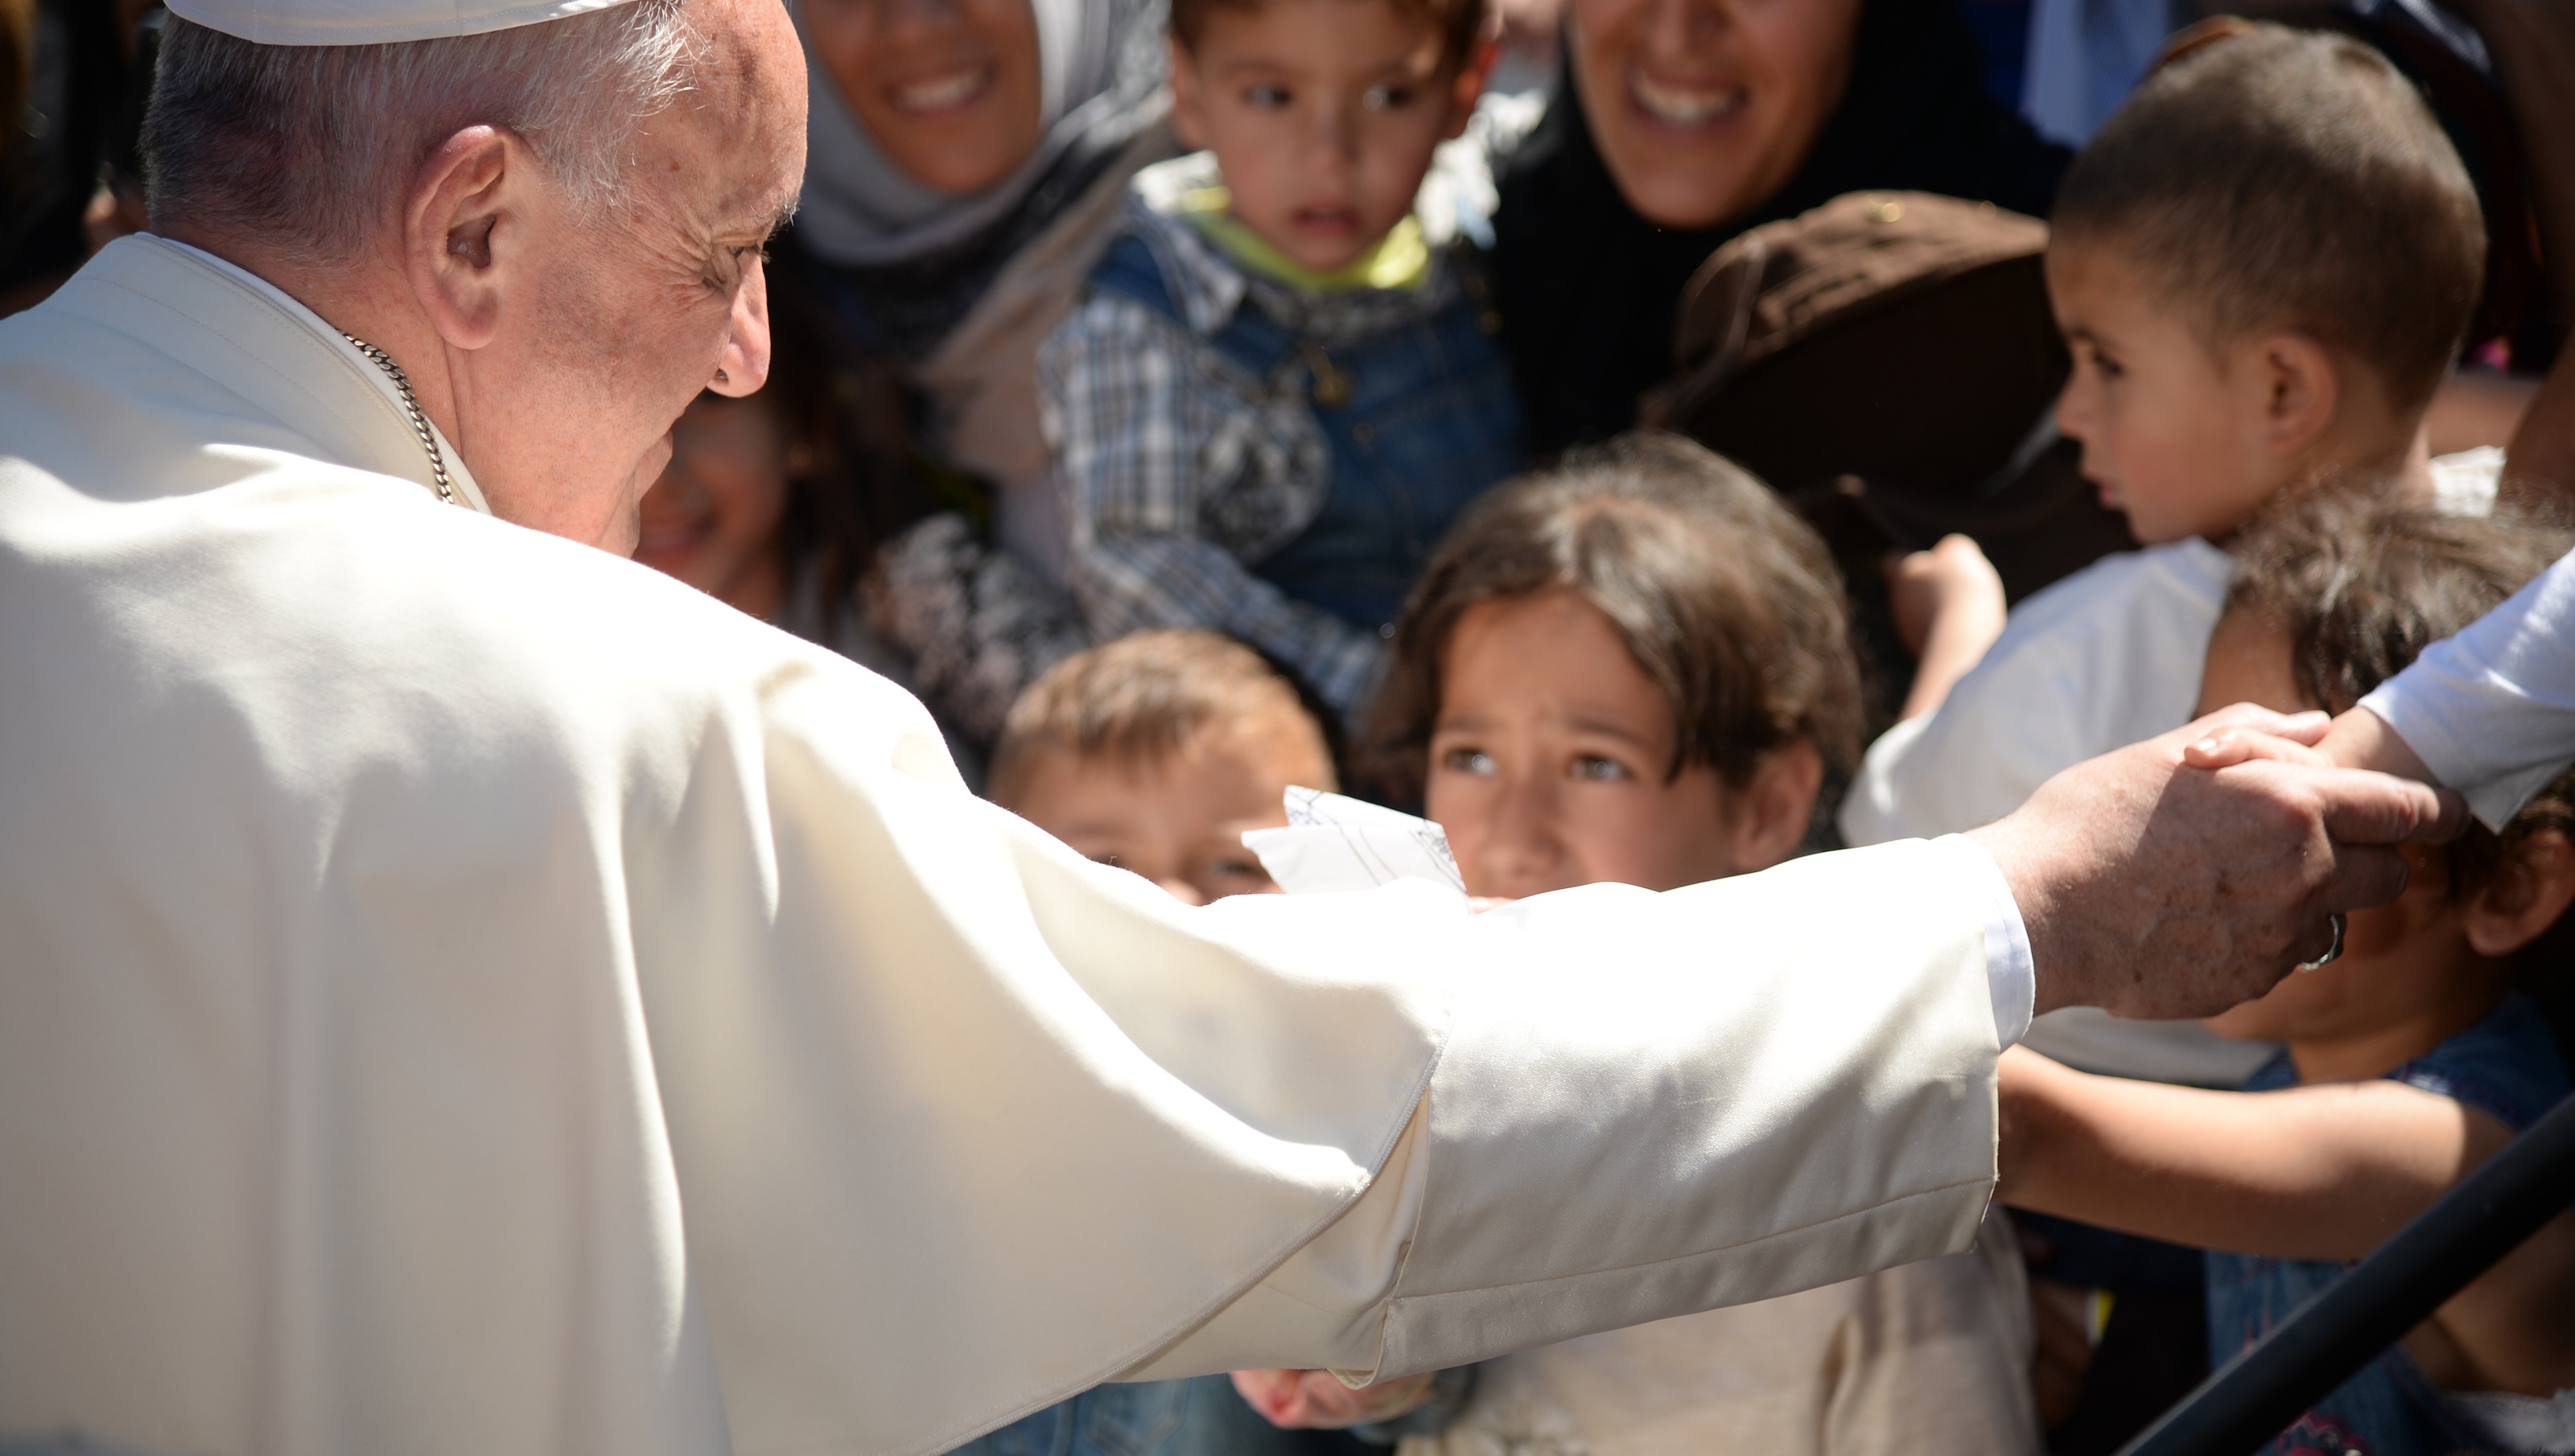 Pope Francis greets migrants and refugees at the Moria refugee camp on April 16, 2016 near the port of Mytilene, on the Greek island of Lesbos. Pope Francis received an emotional welcome today on the Greek island of Lesbos during a visit aimed at showing solidarity with migrants fleeing war and poverty.  Pope Francis, Orthodox Patriarch Bartholomew and Archbishop Jerome visit Lesbos today to turn the spotlight on Europe's controversial deal with Turkey to end an unprecedented refugee crisis.  AFP PHOTO POOL / FILIPPO MONTEFORTE